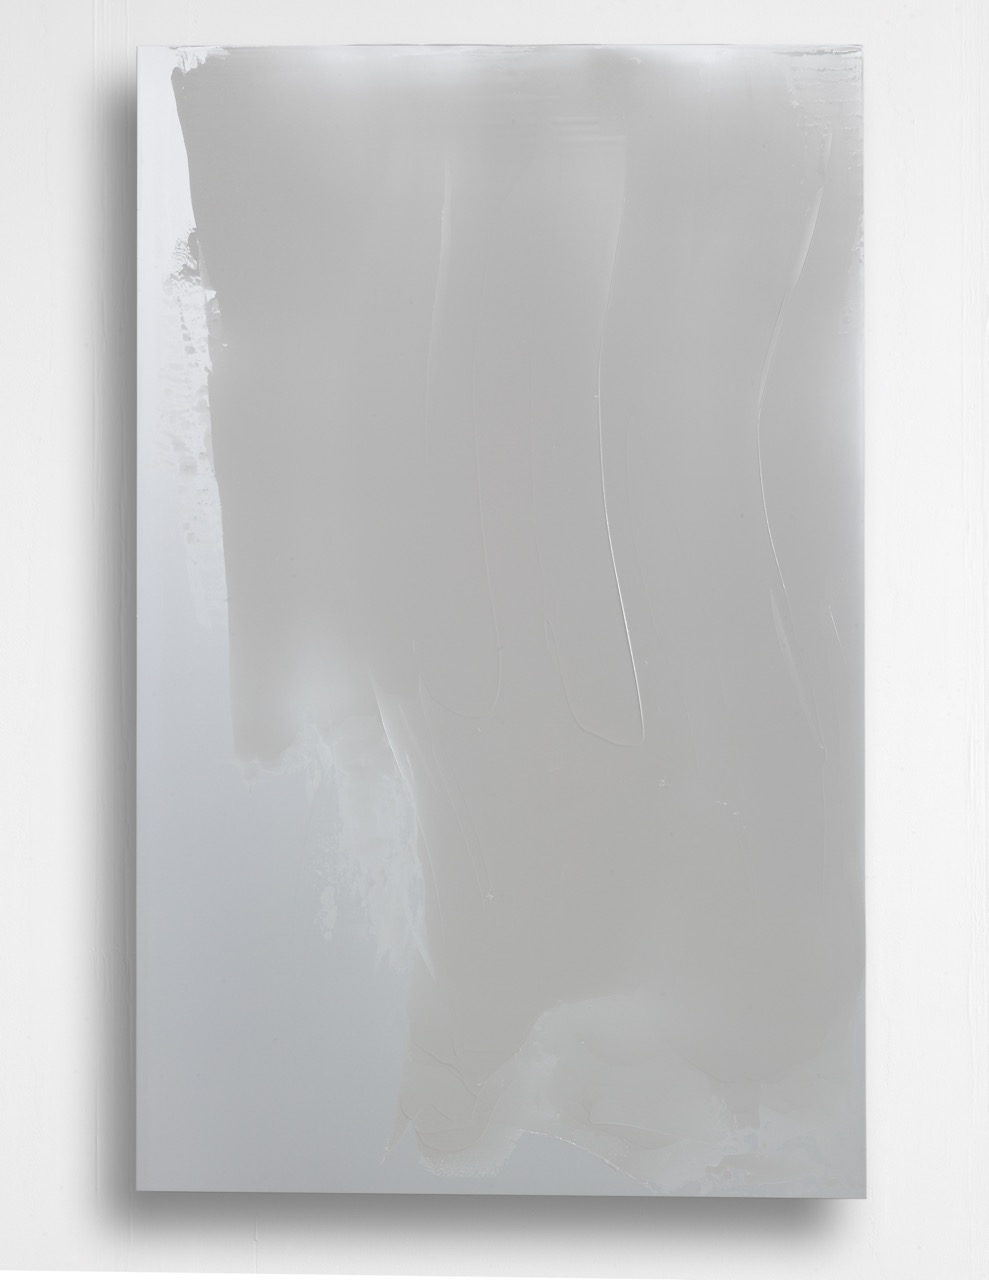 Untitled (Pear Blossoms), 2007, 180x75cm.jpg